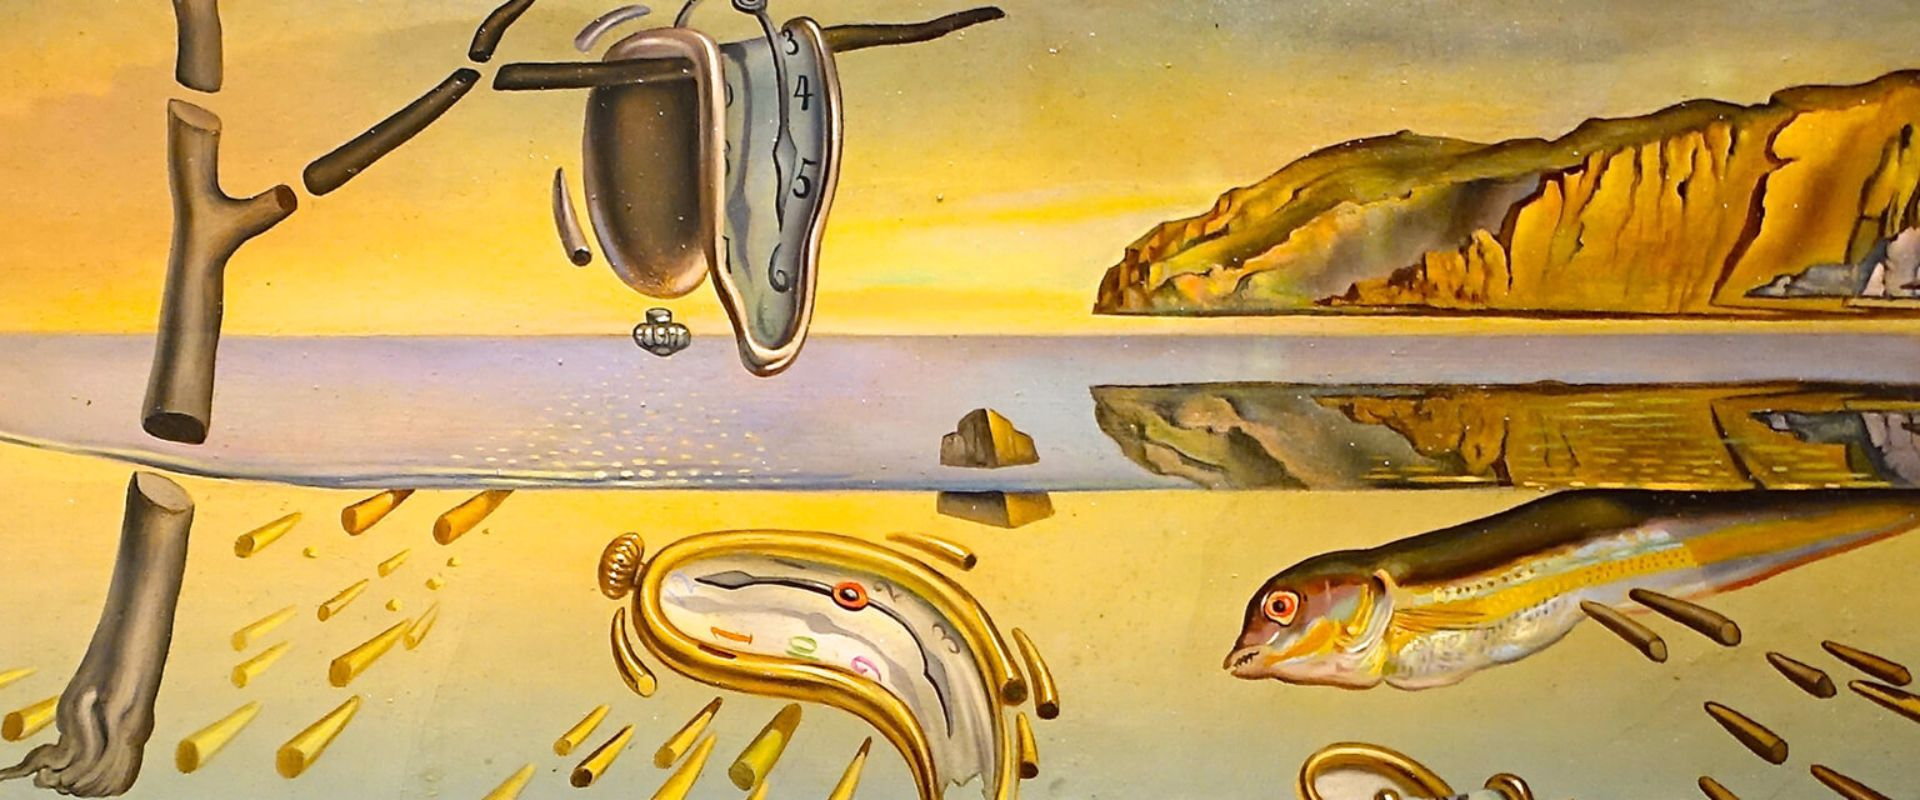 Salvador Dalí Paintings Artworks Collection | Buy Posters, Frames, Canvas, Digital Art & Large Size Prints Of The Famous Modern Master's Artworks